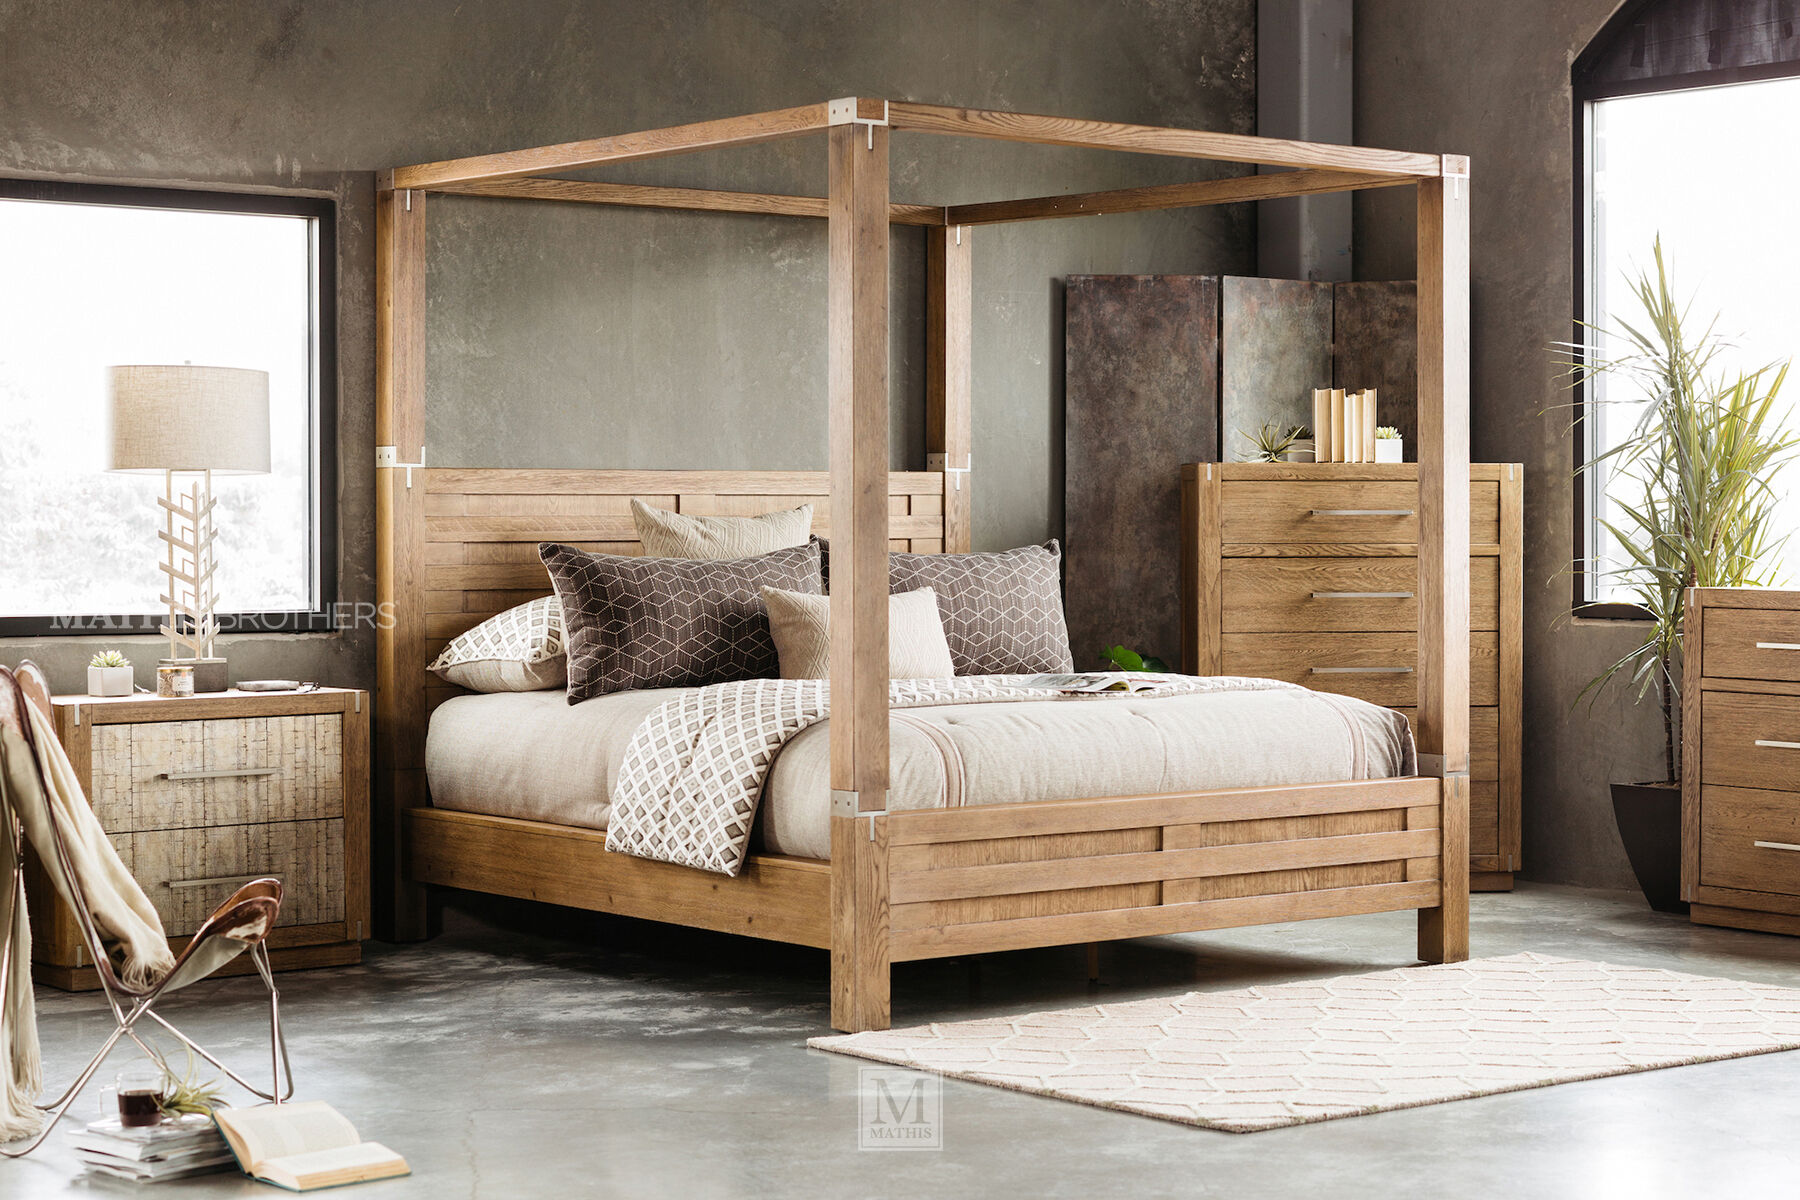 ... Four-Piece Modern Canopy Bedroom Set in Brown ... & Four-Piece Modern Canopy Bedroom Set in Brown | Mathis Brothers ...